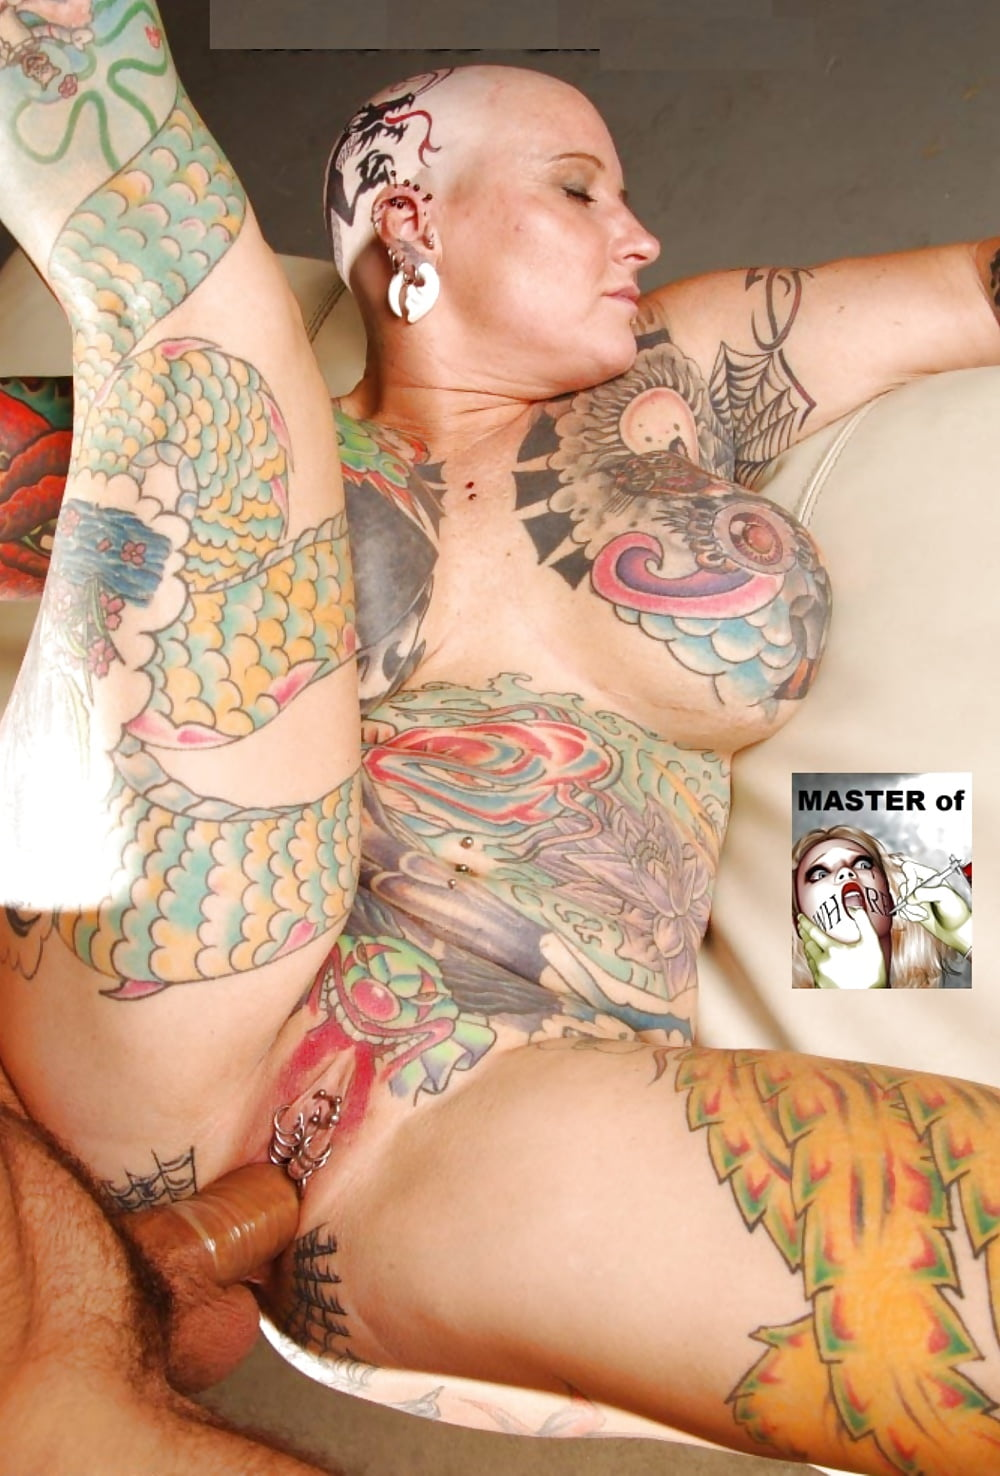 india-lady-with-satanic-tattoos-on-pussy-porn